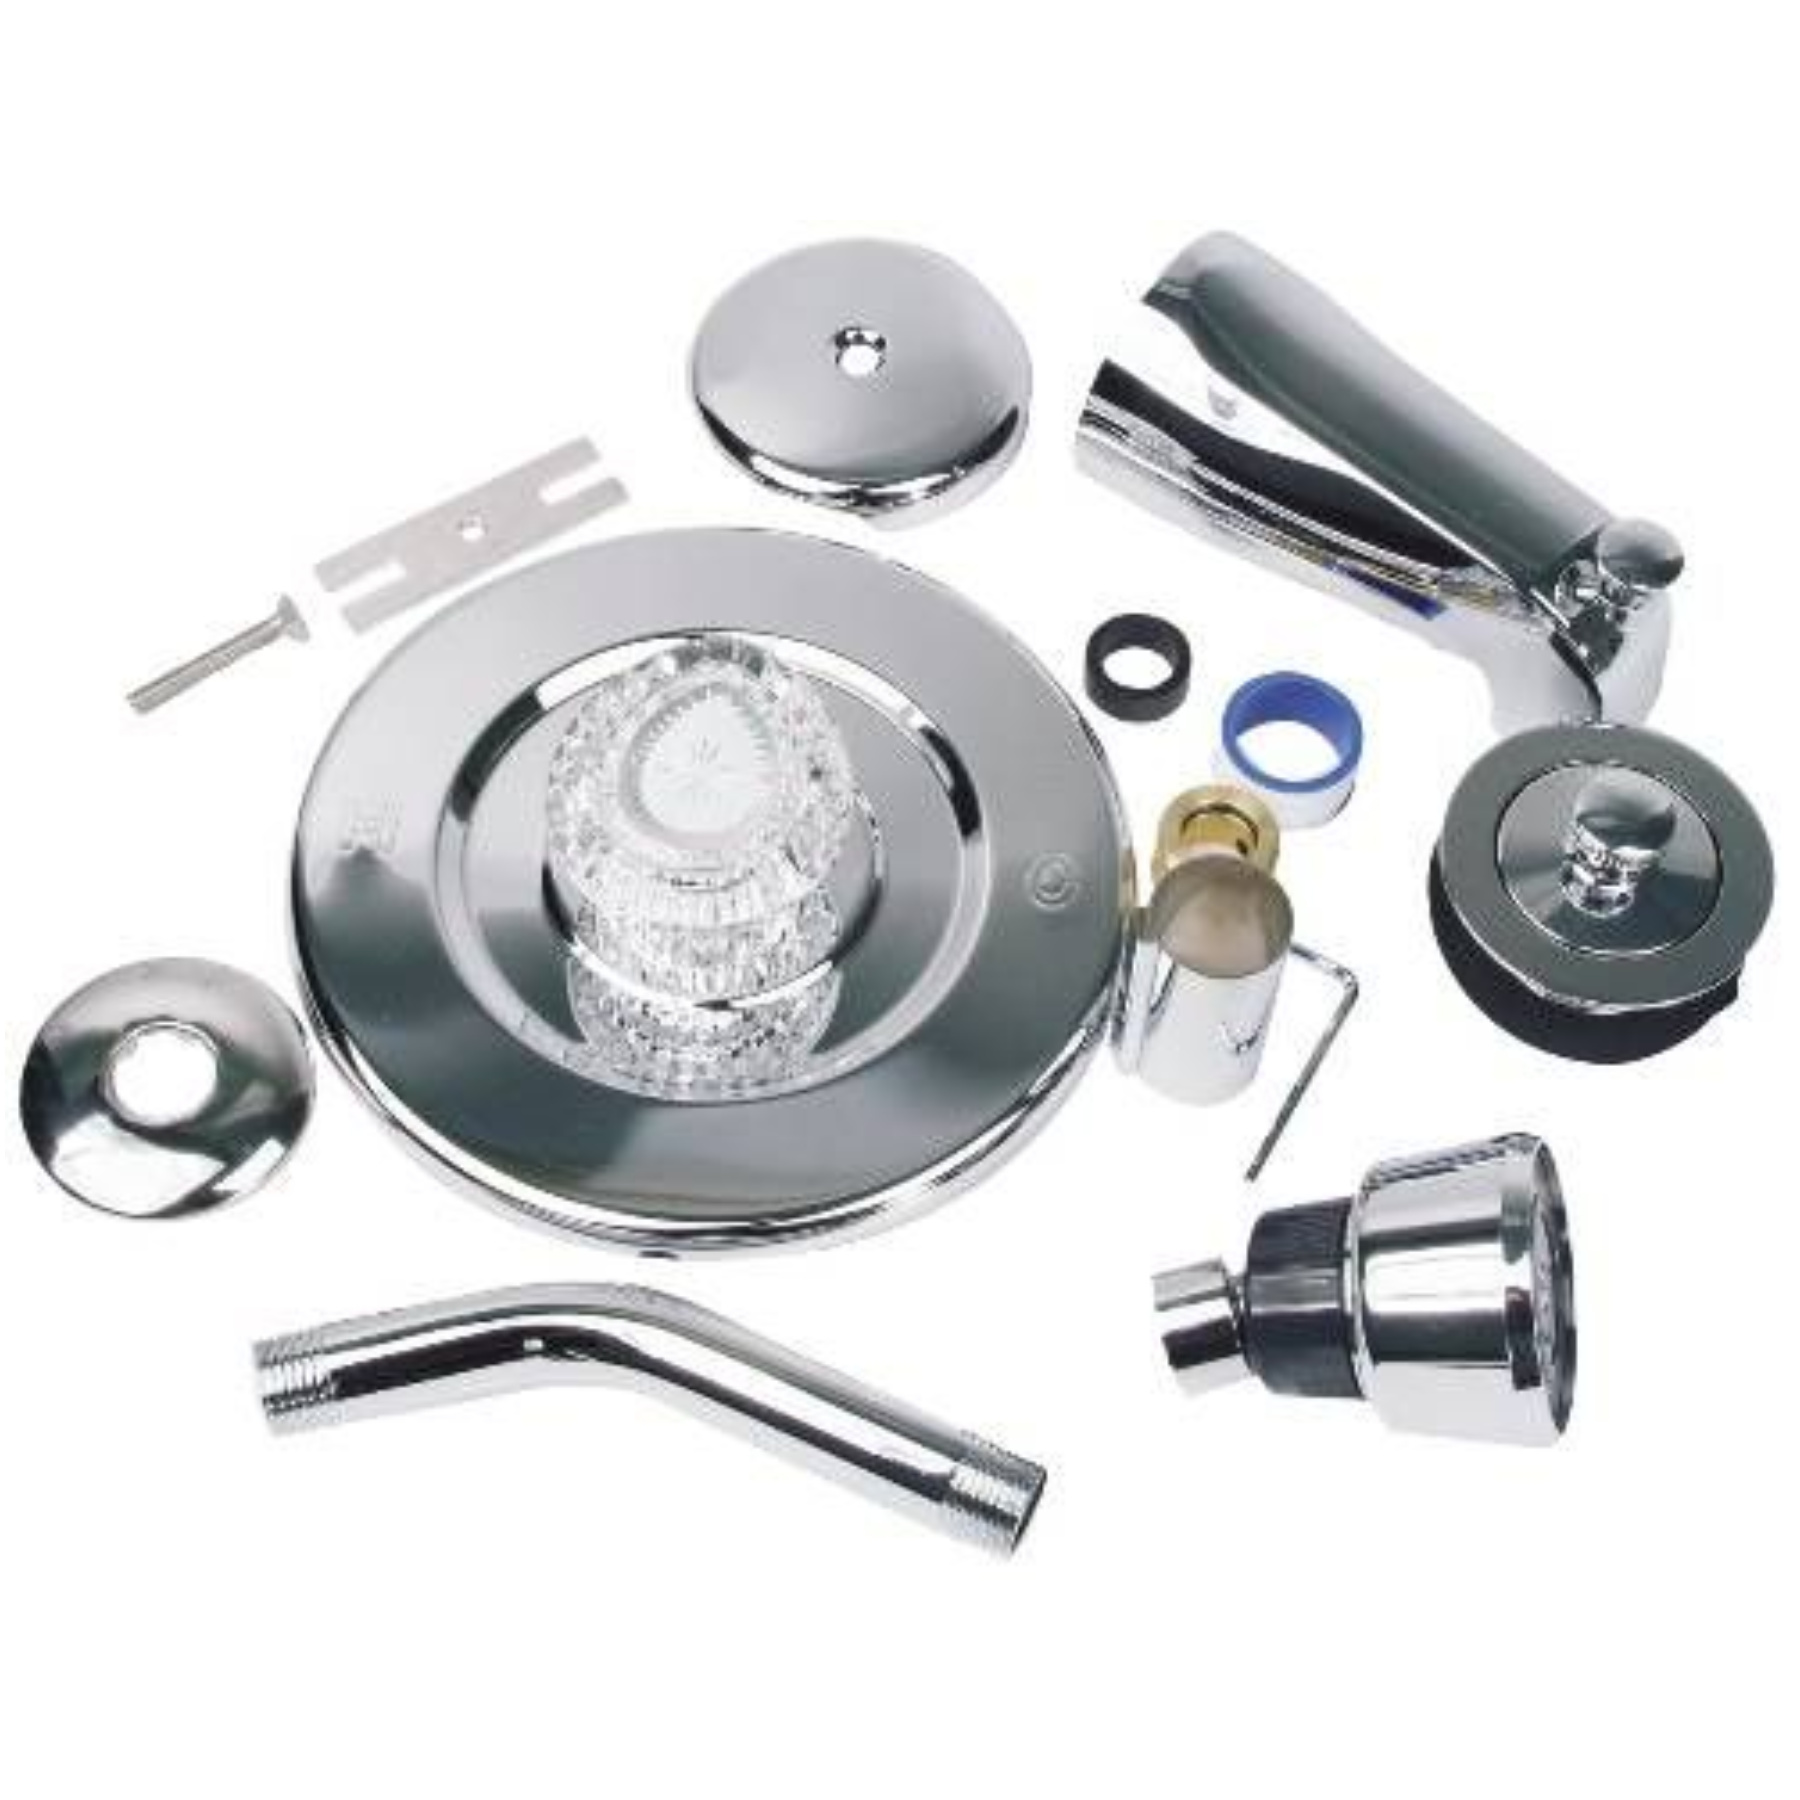 MIXET REBUILD KIT SINGLE LEVER FAUCET BRUSHED NICKEL